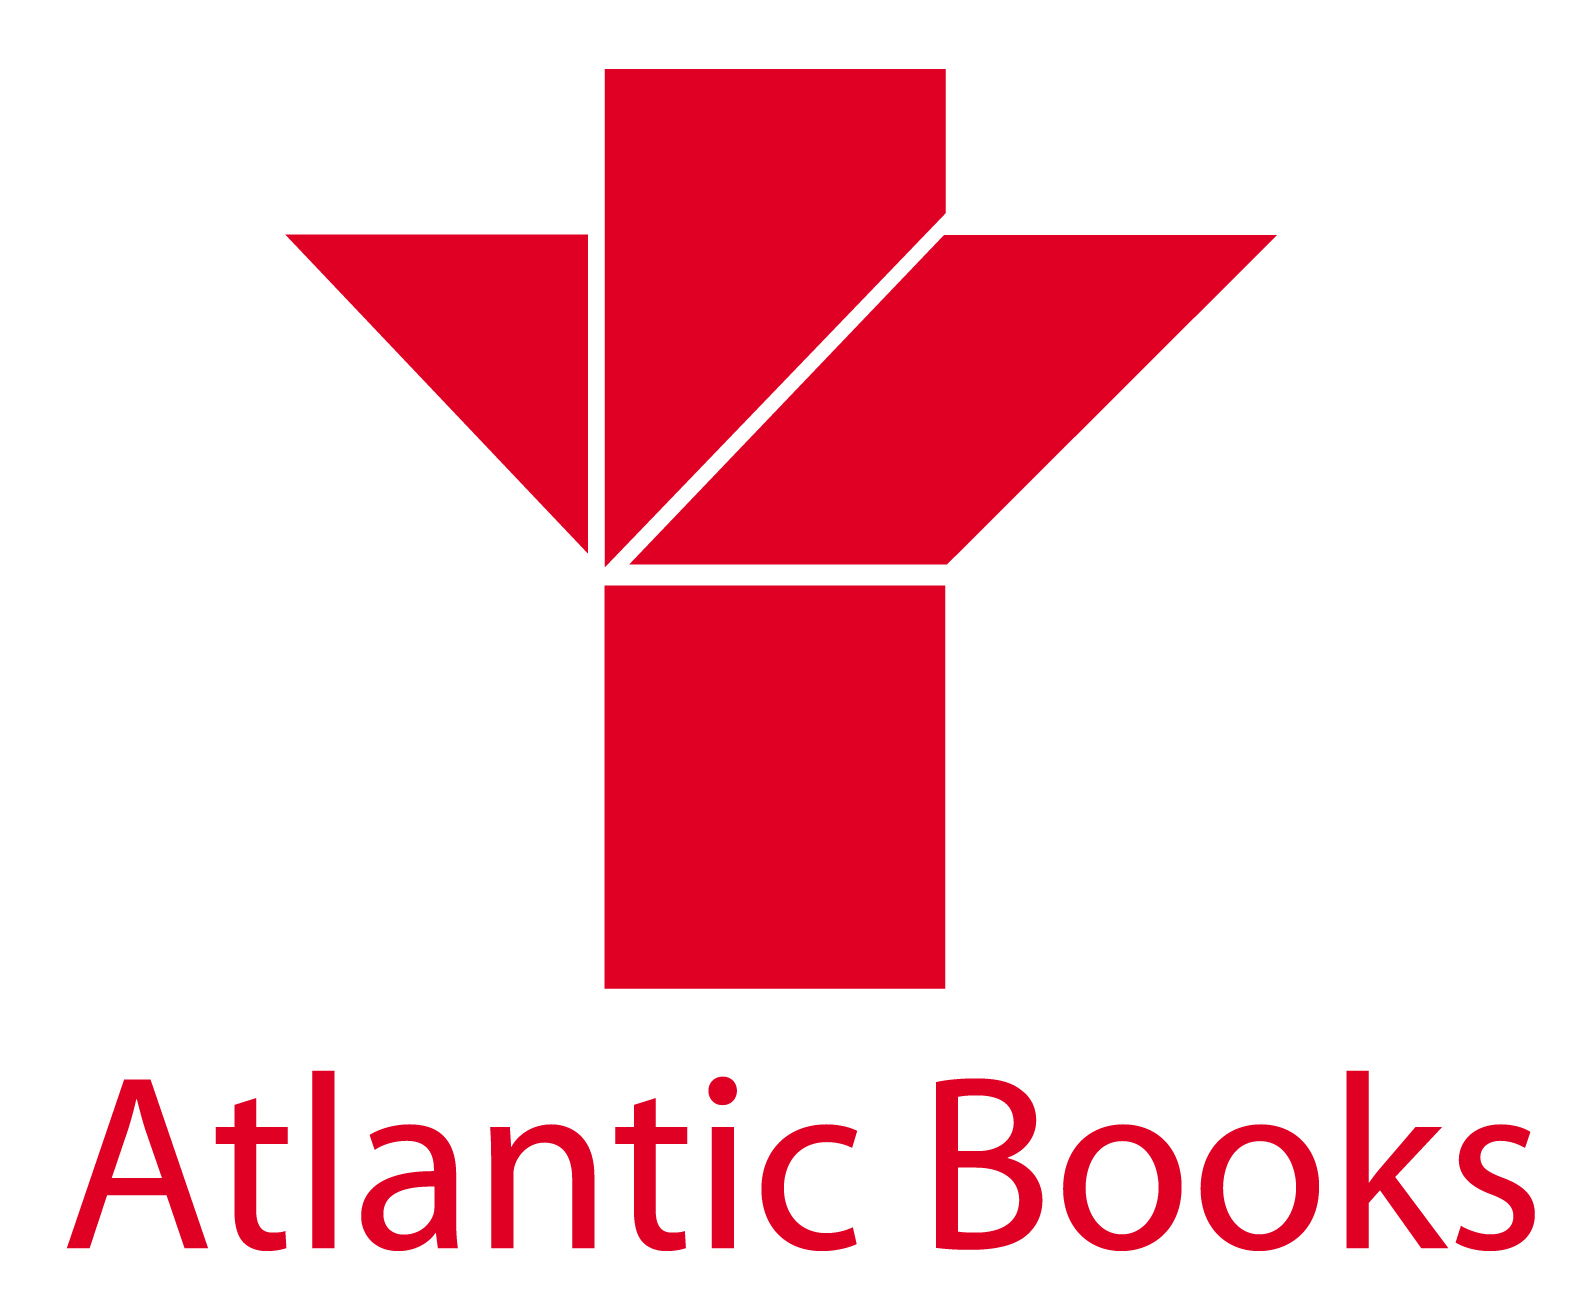 Toby Mundy, Ceo And Publisher At Atlantic Books, Said: 'atlantic Books Has  Prospered Within The Independent Alliance And It Remains An Important Part  Of Our